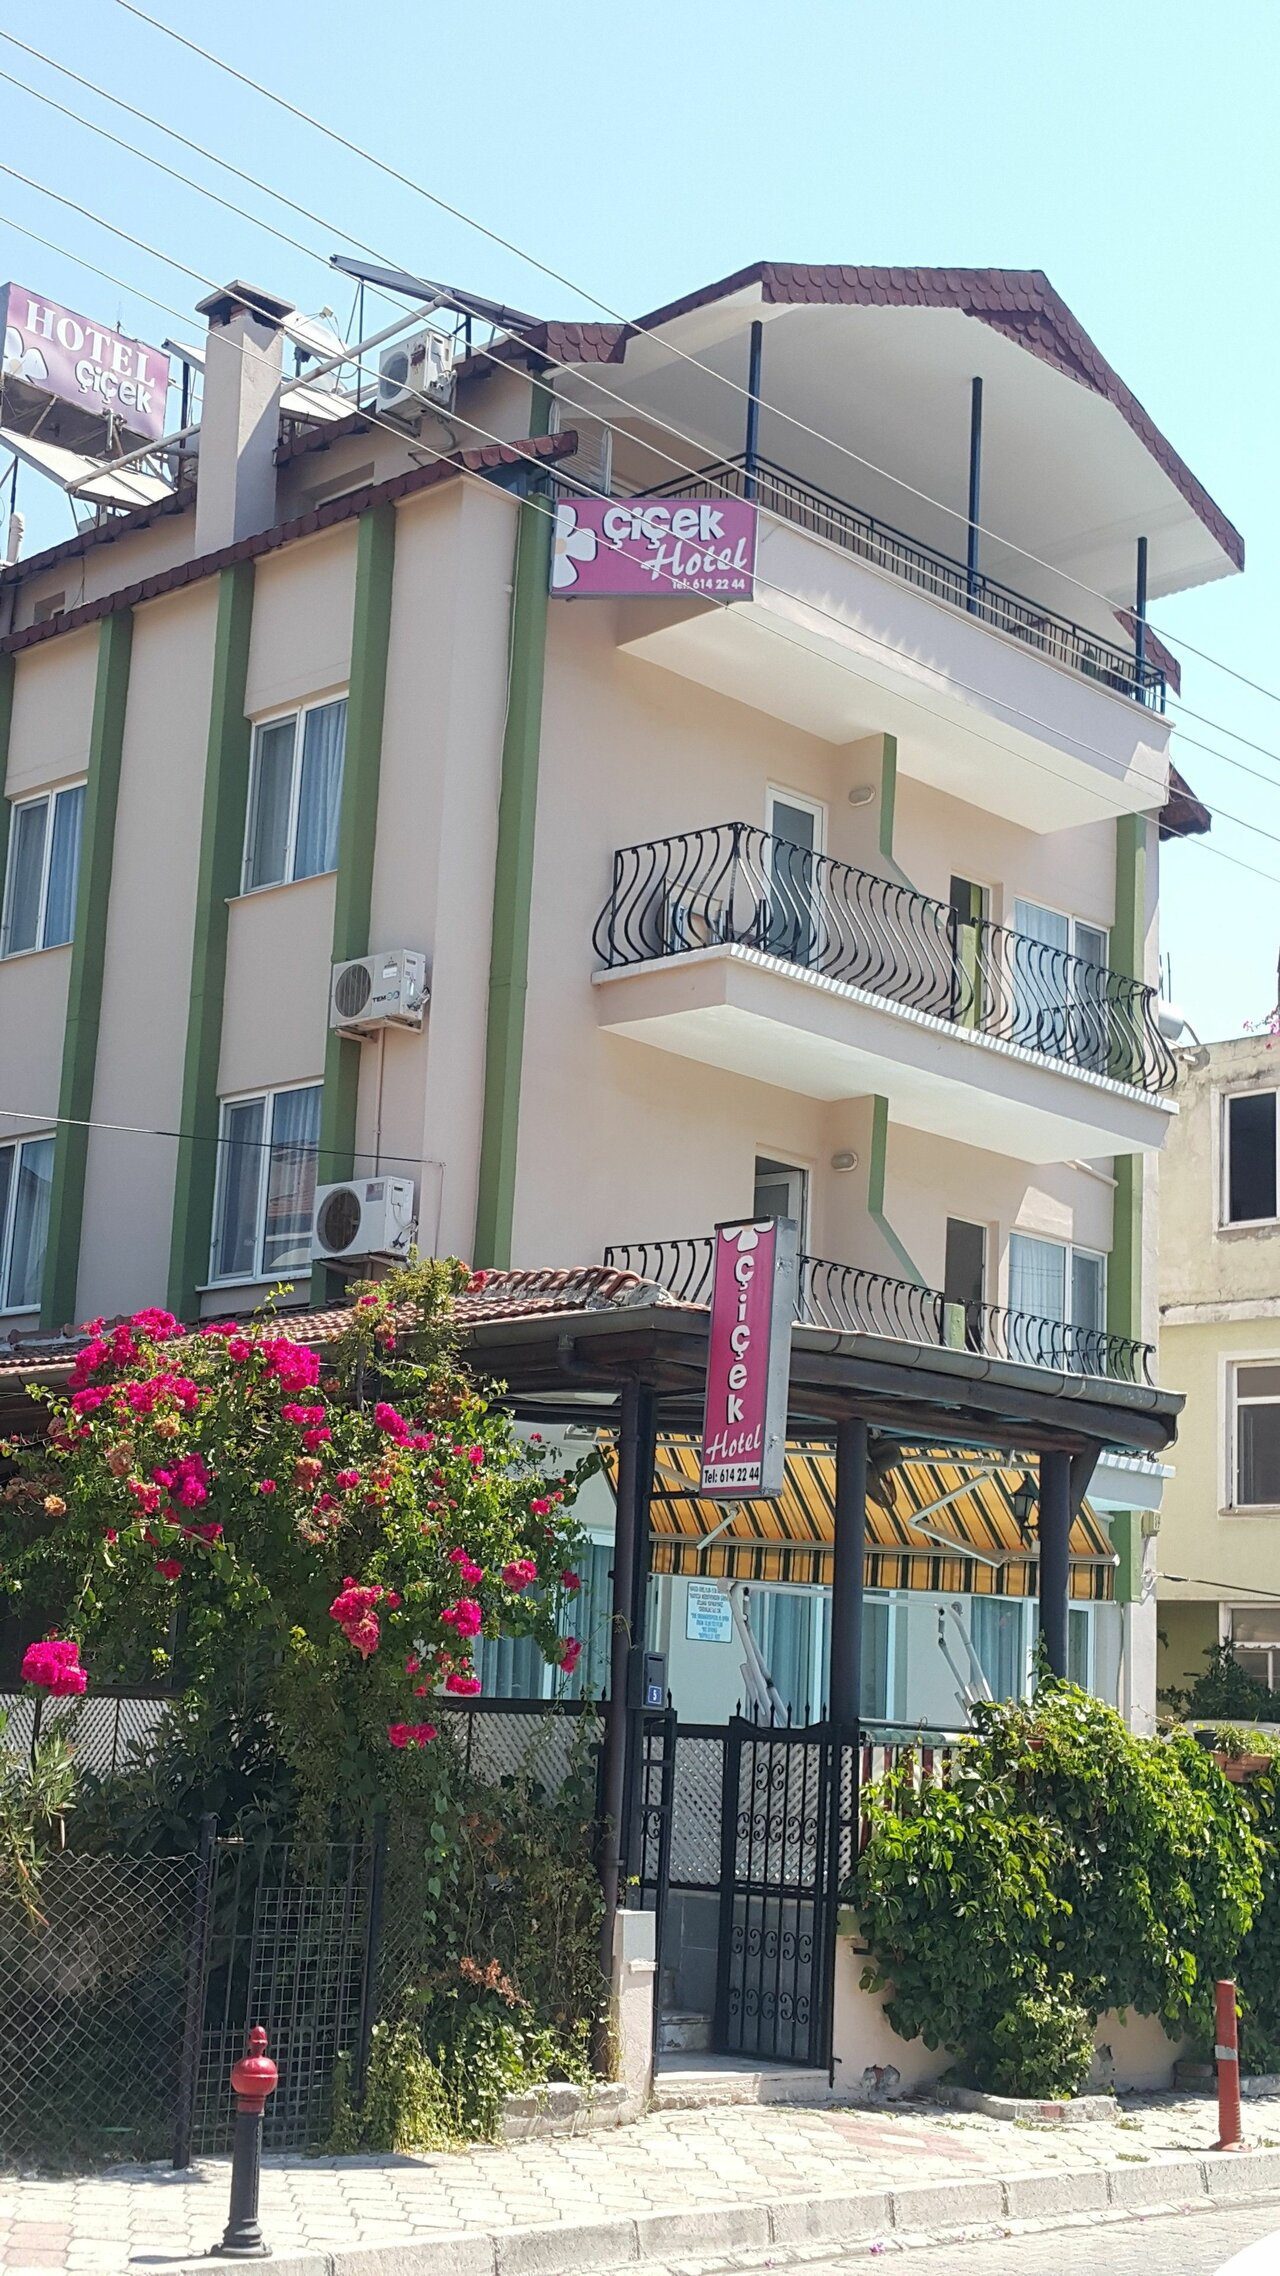 Cicek Hotel And Apartments